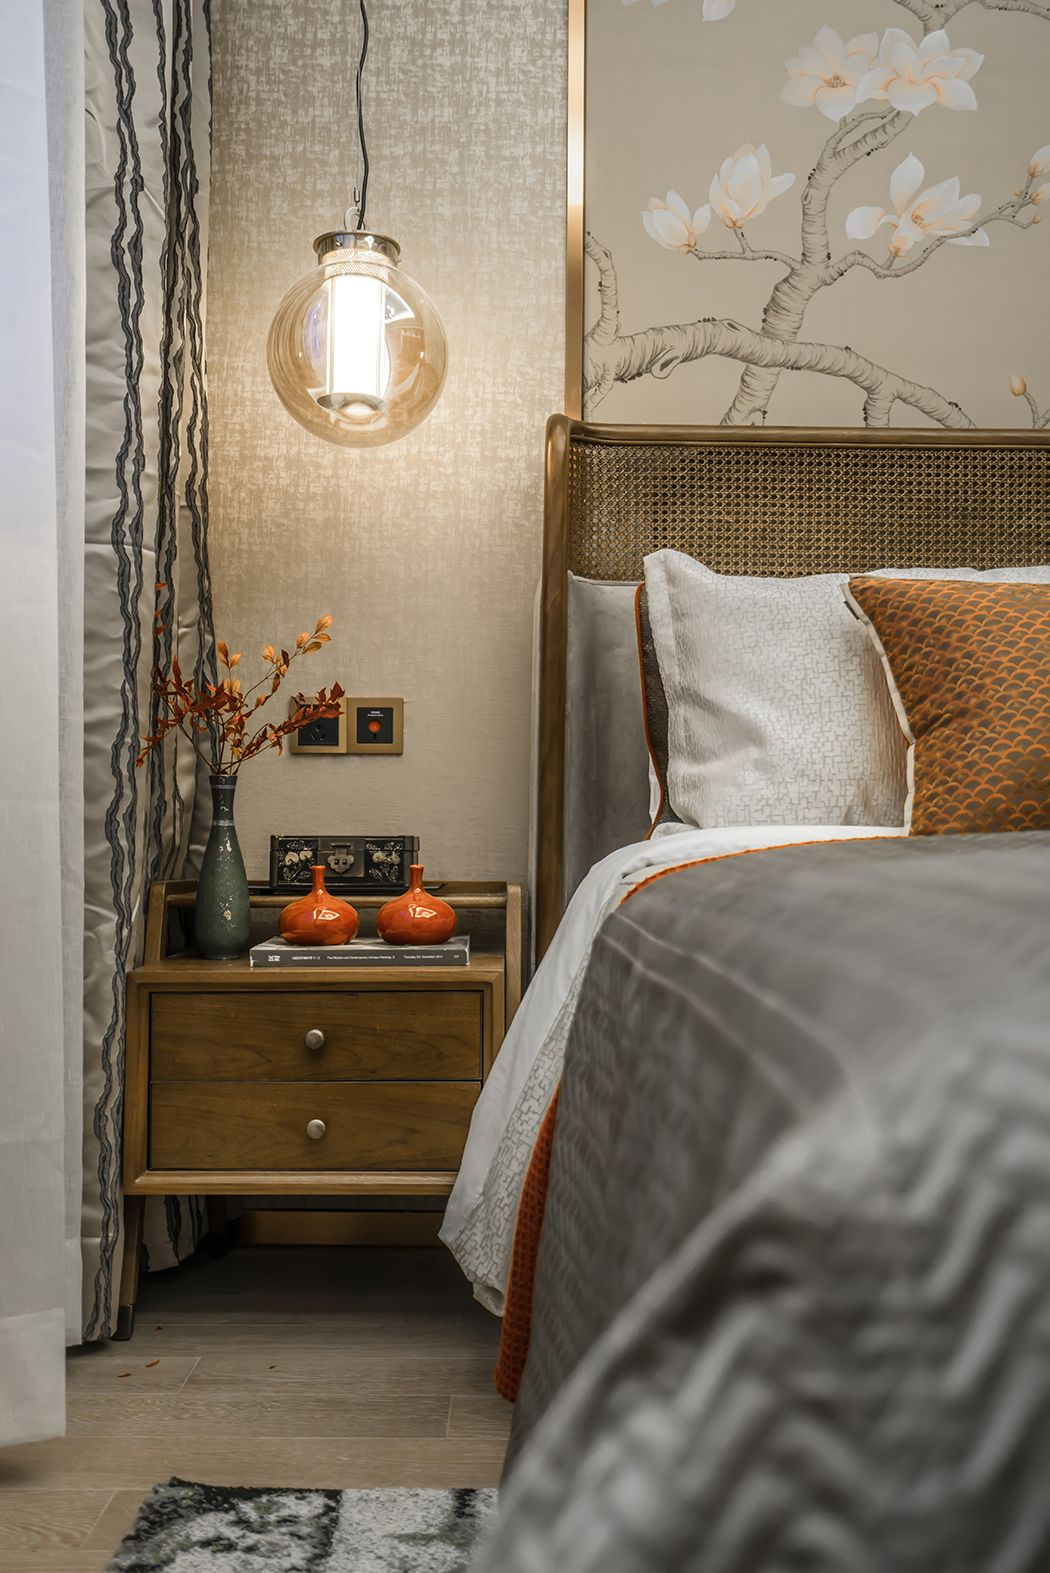 Pin by Kiara Canion on Home Bed design, Modern bedroom